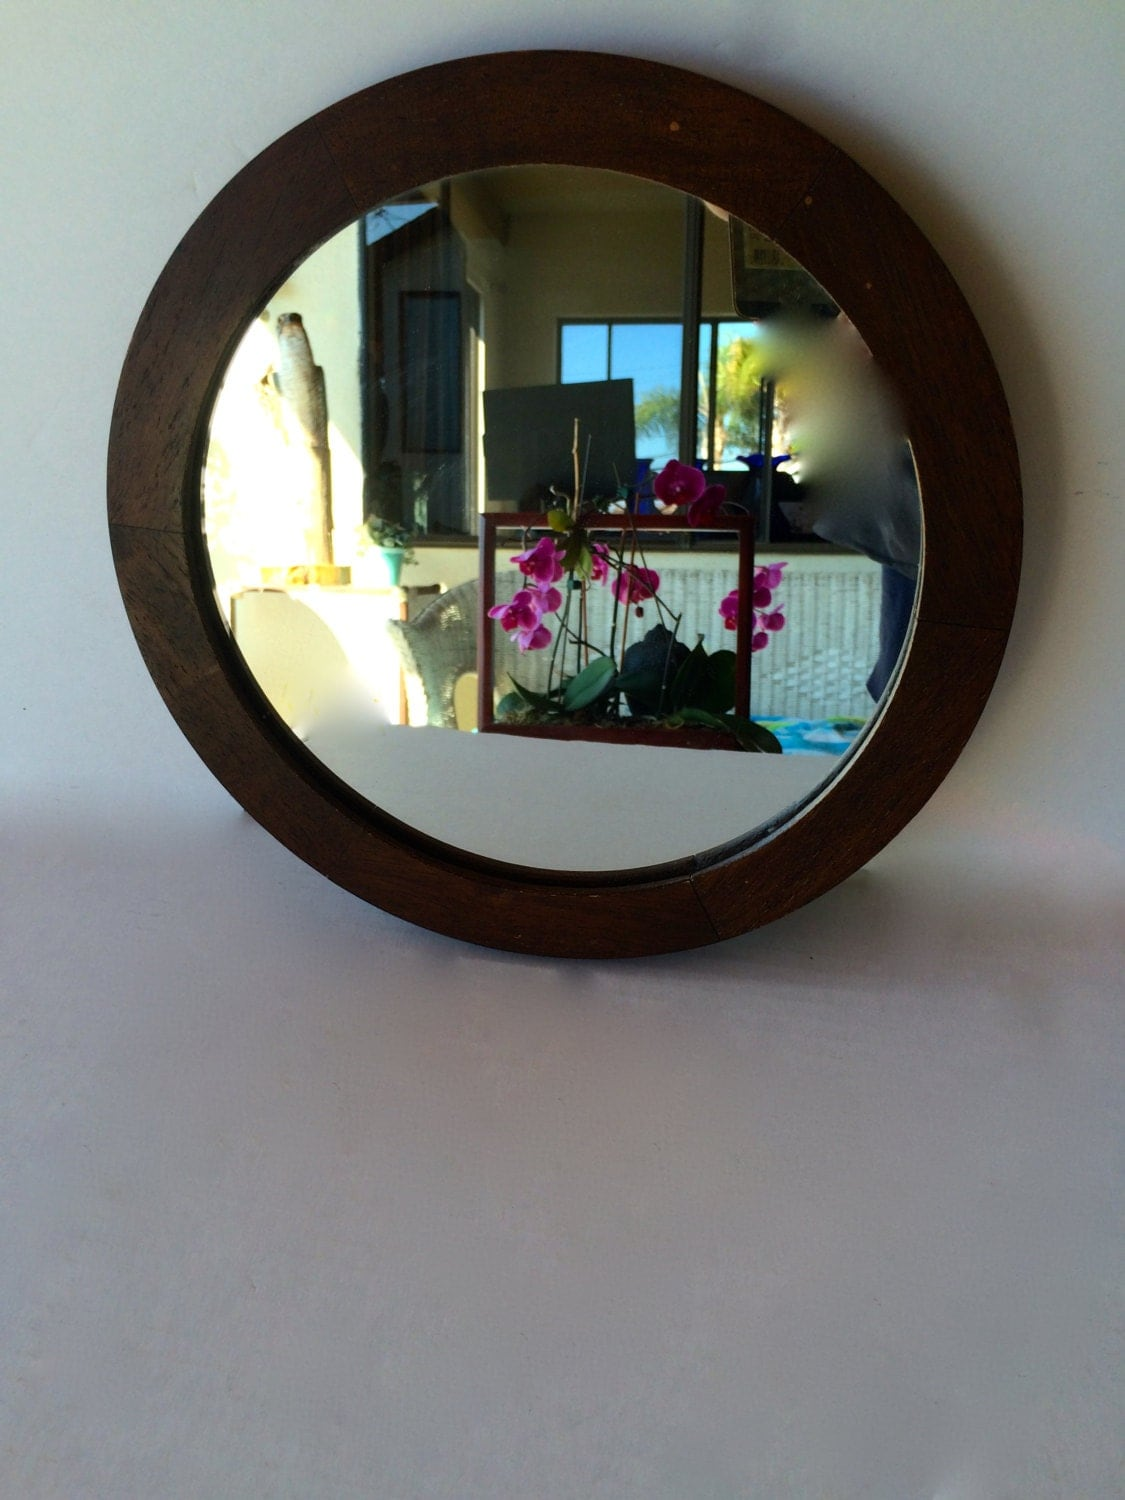 Antique round mirror vanity mirror wood framed round mirror Round framed mirror